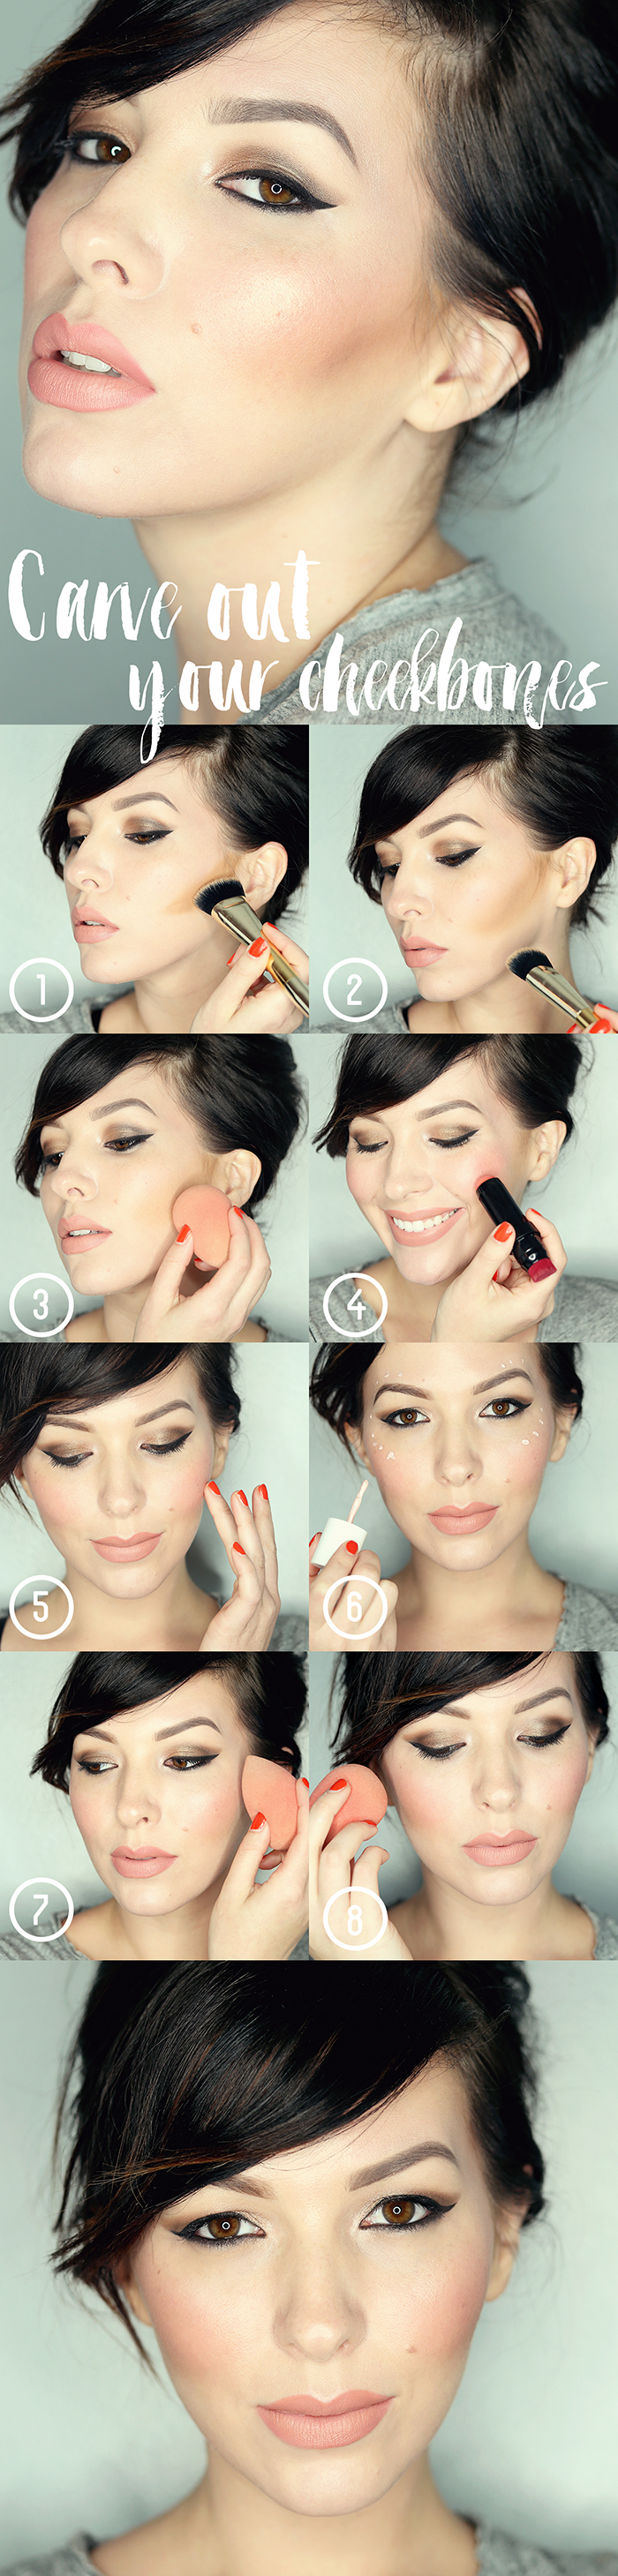 How To Carve Out Your Cheekbones contour tutorial resize